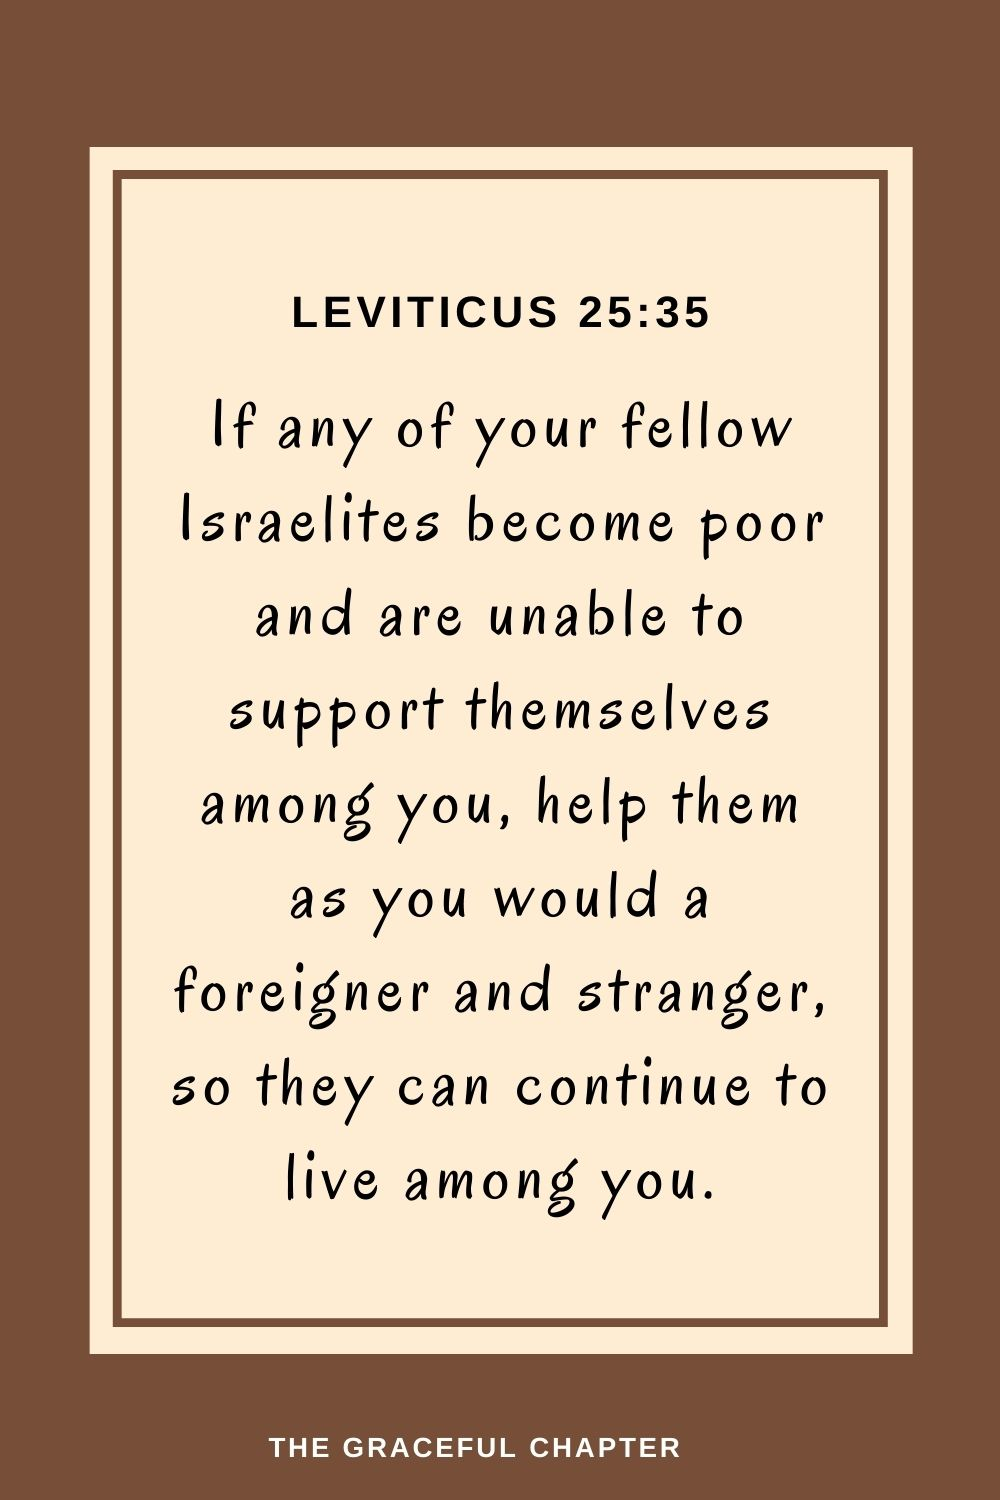 If any of your fellow Israelites become poorand are unable to support themselves among you, help themas you would a foreigner and stranger, so they can continue to live among you. Leviticus 25:35